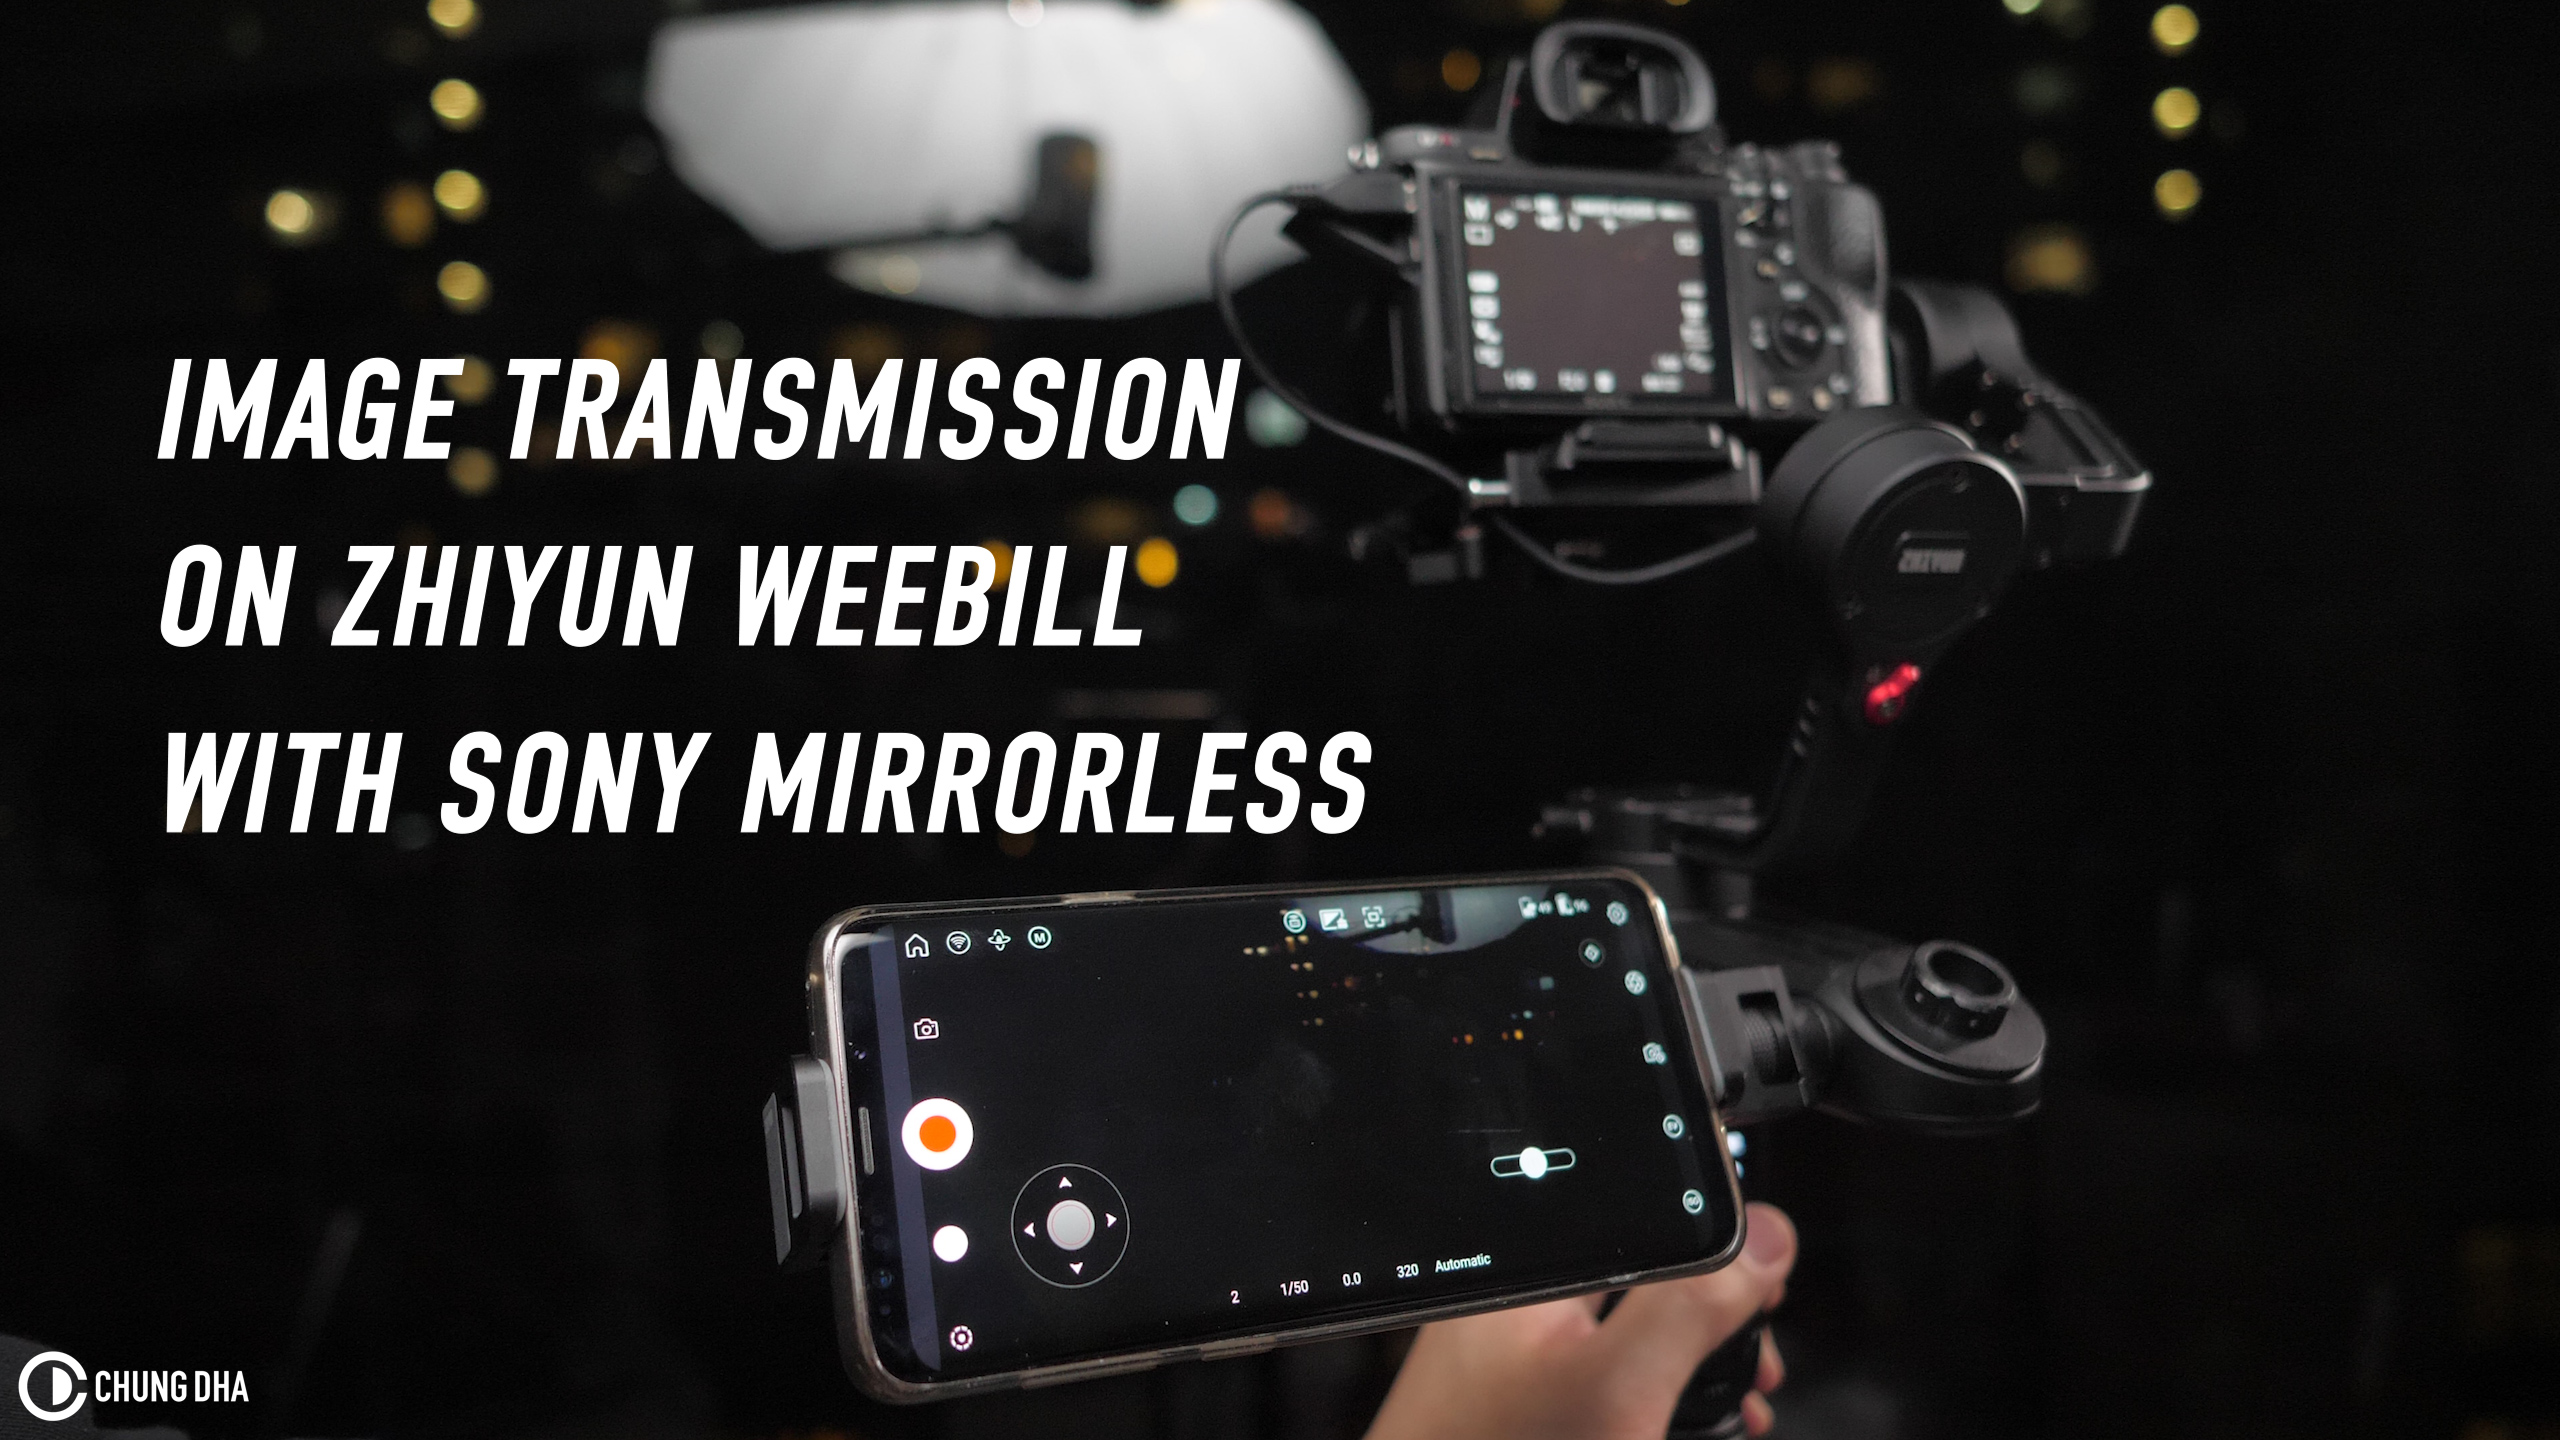 Image Transmission on Zhiyun Weebill with Sony Mirrorless